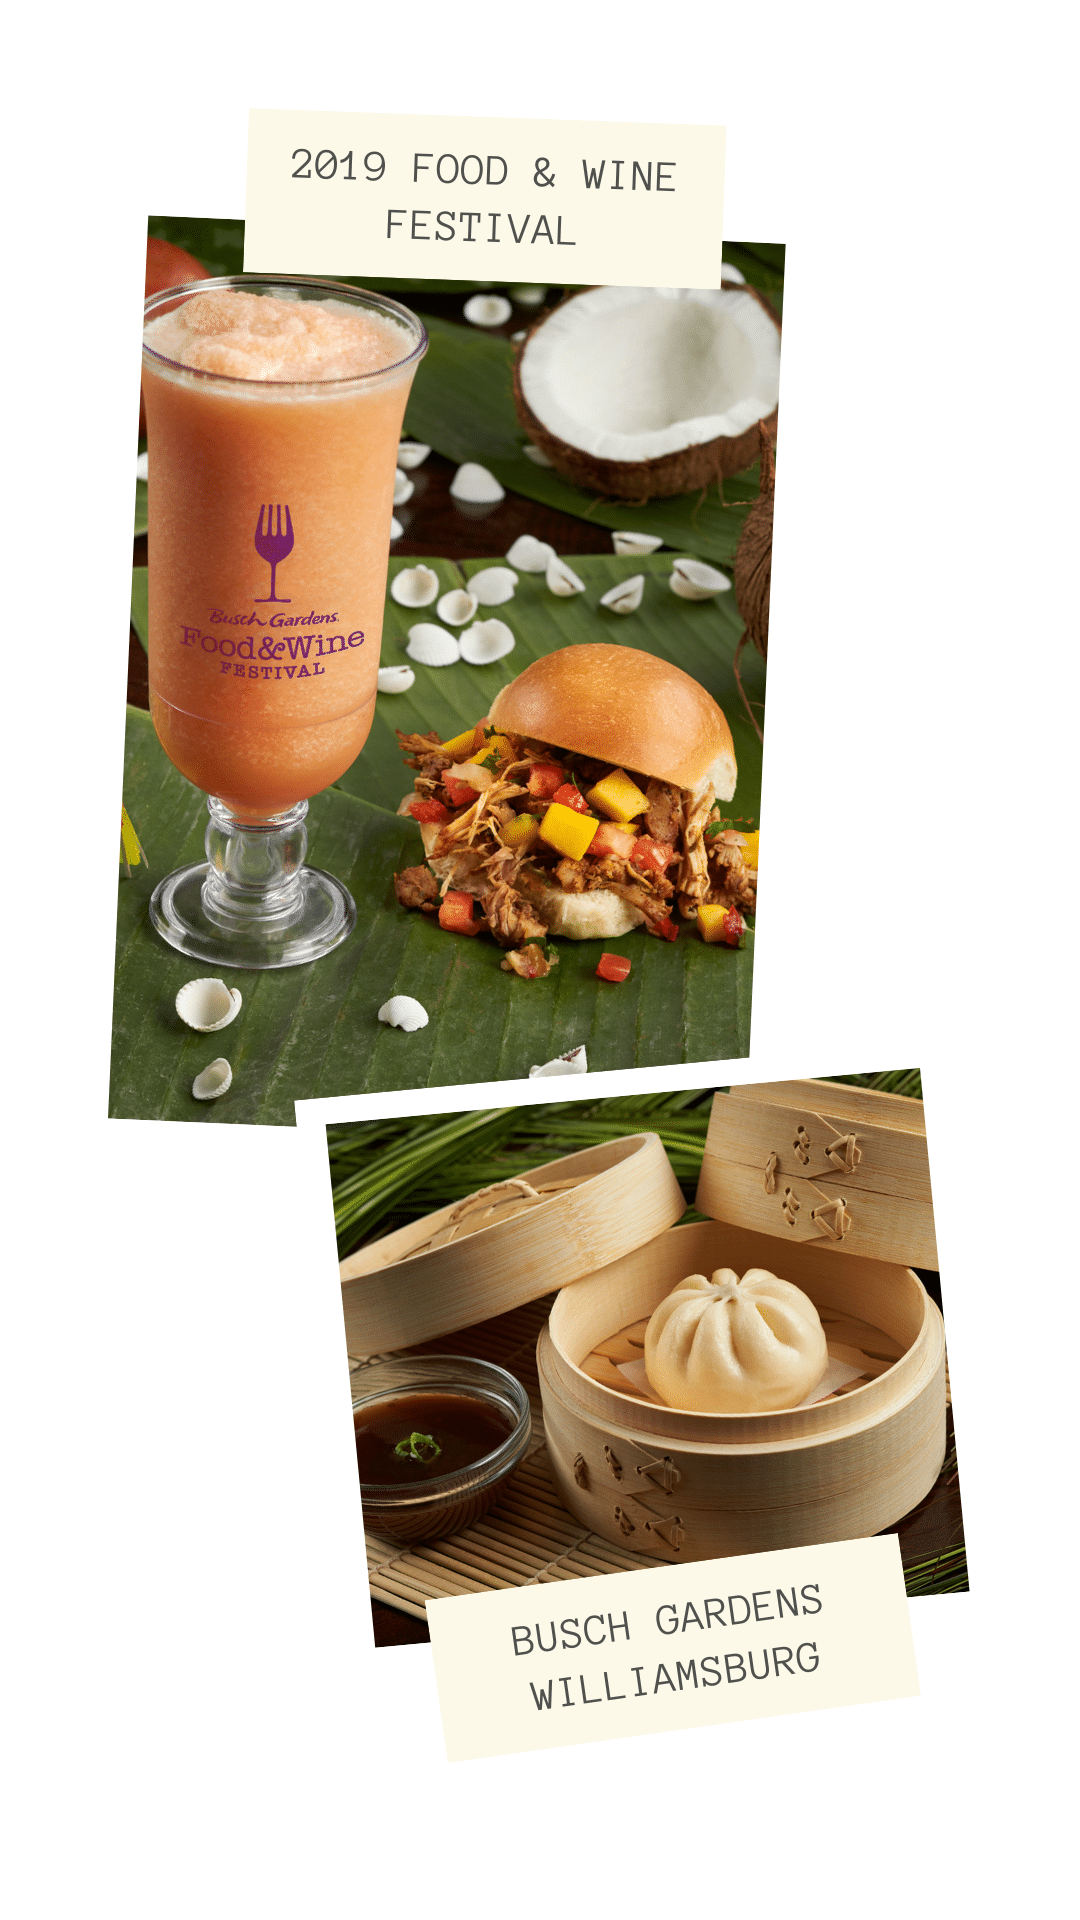 2019 Food & Wine Festival. Busch Gardens 7th Annual Food & Wine Festival kicks off May 17th. Every Friday, Saturday and Sunday from May 17-June 30 guests can enjoy food from and drinks from around the world.